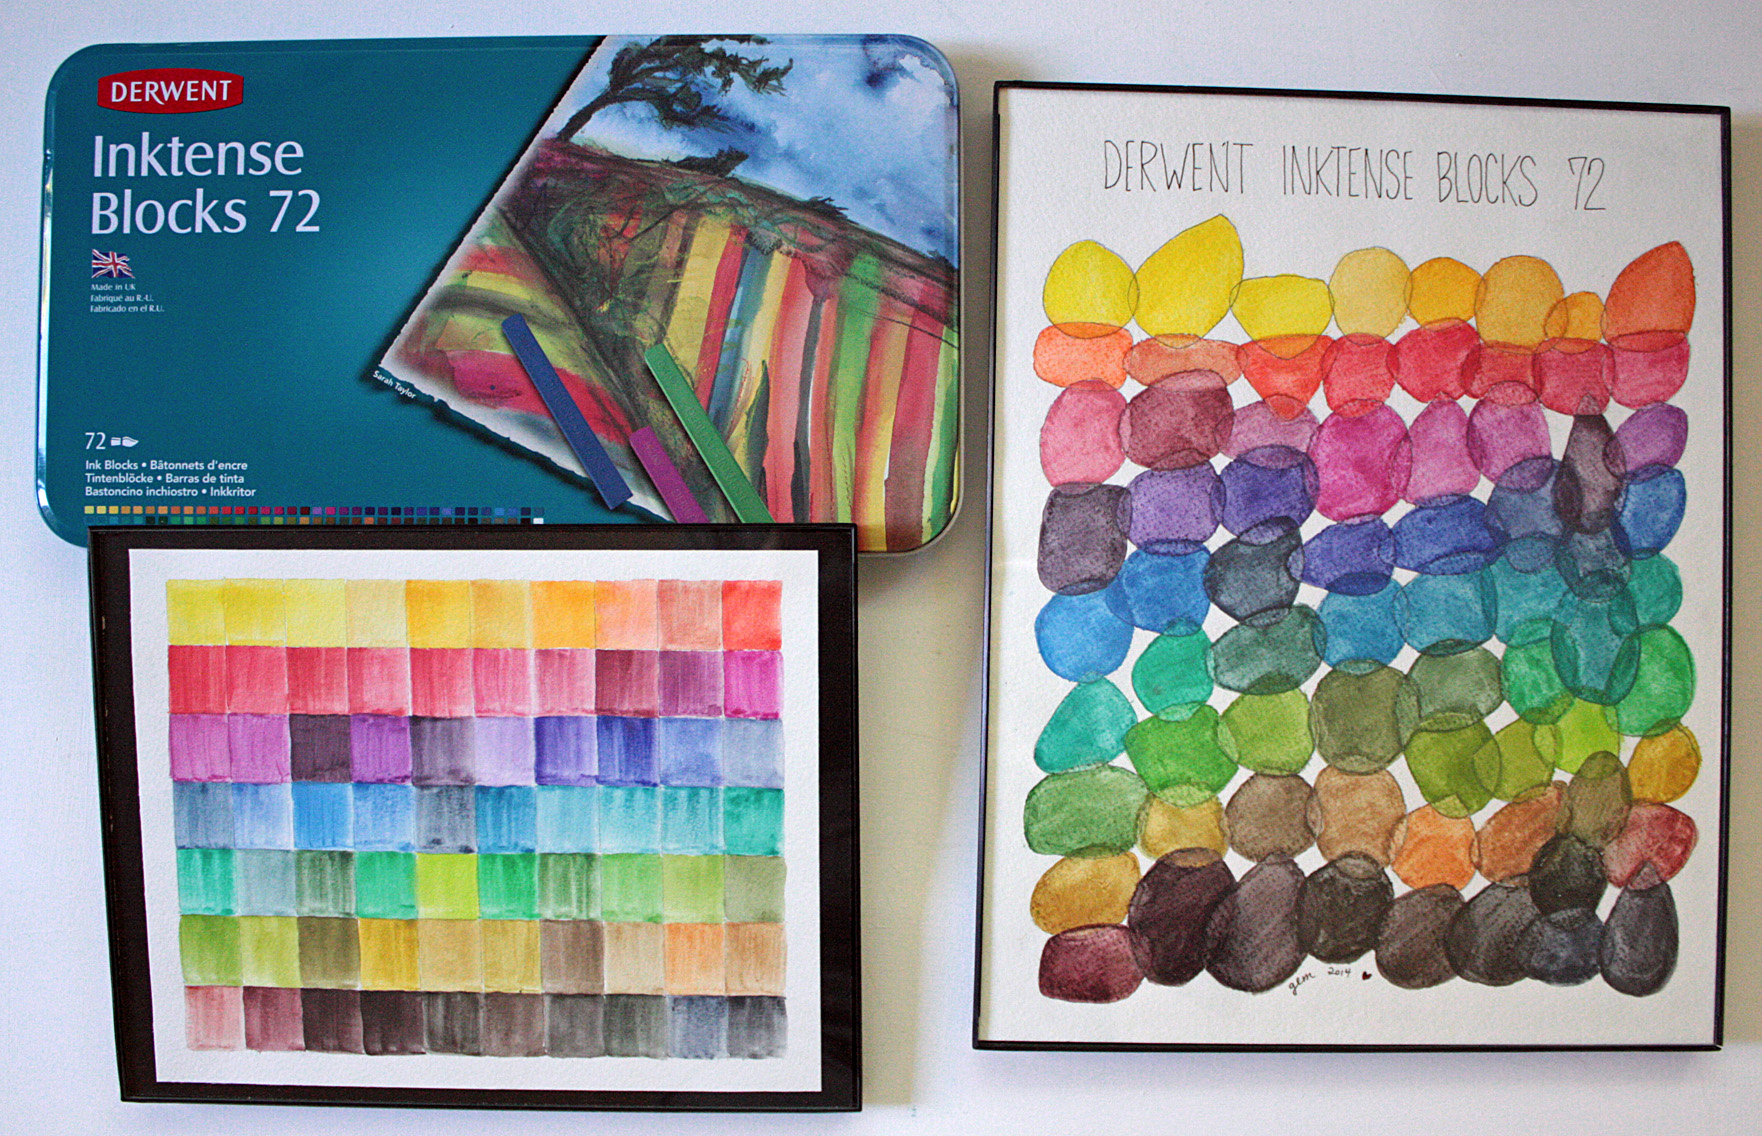 Derwent Inktense Blocks 72 count tin with framed handpainted color palettes